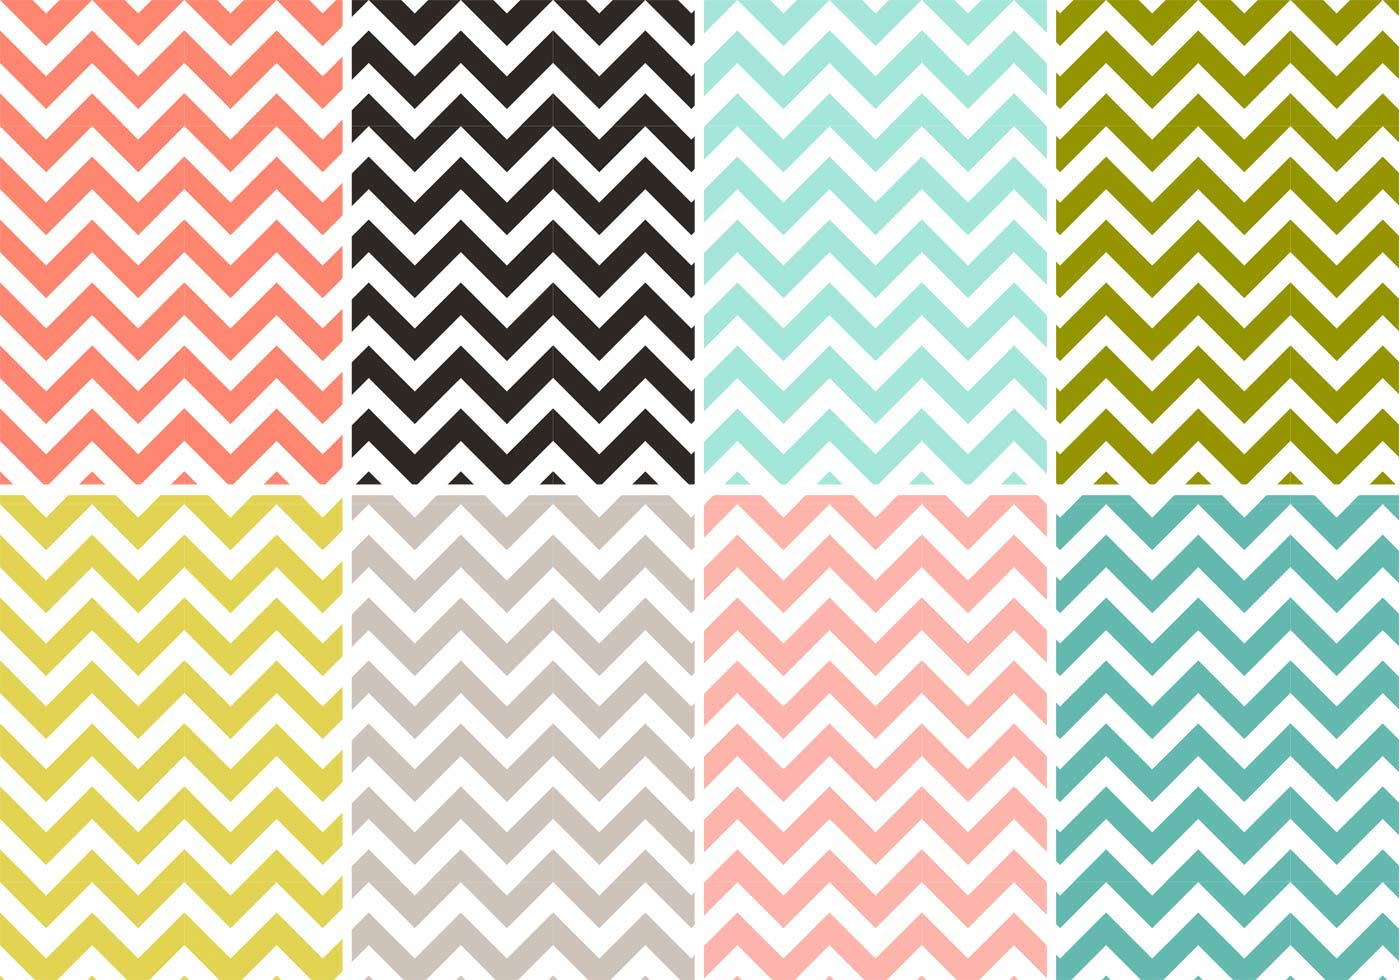 Free vector Chevron Background Pattern #12298 | My Graphic ...